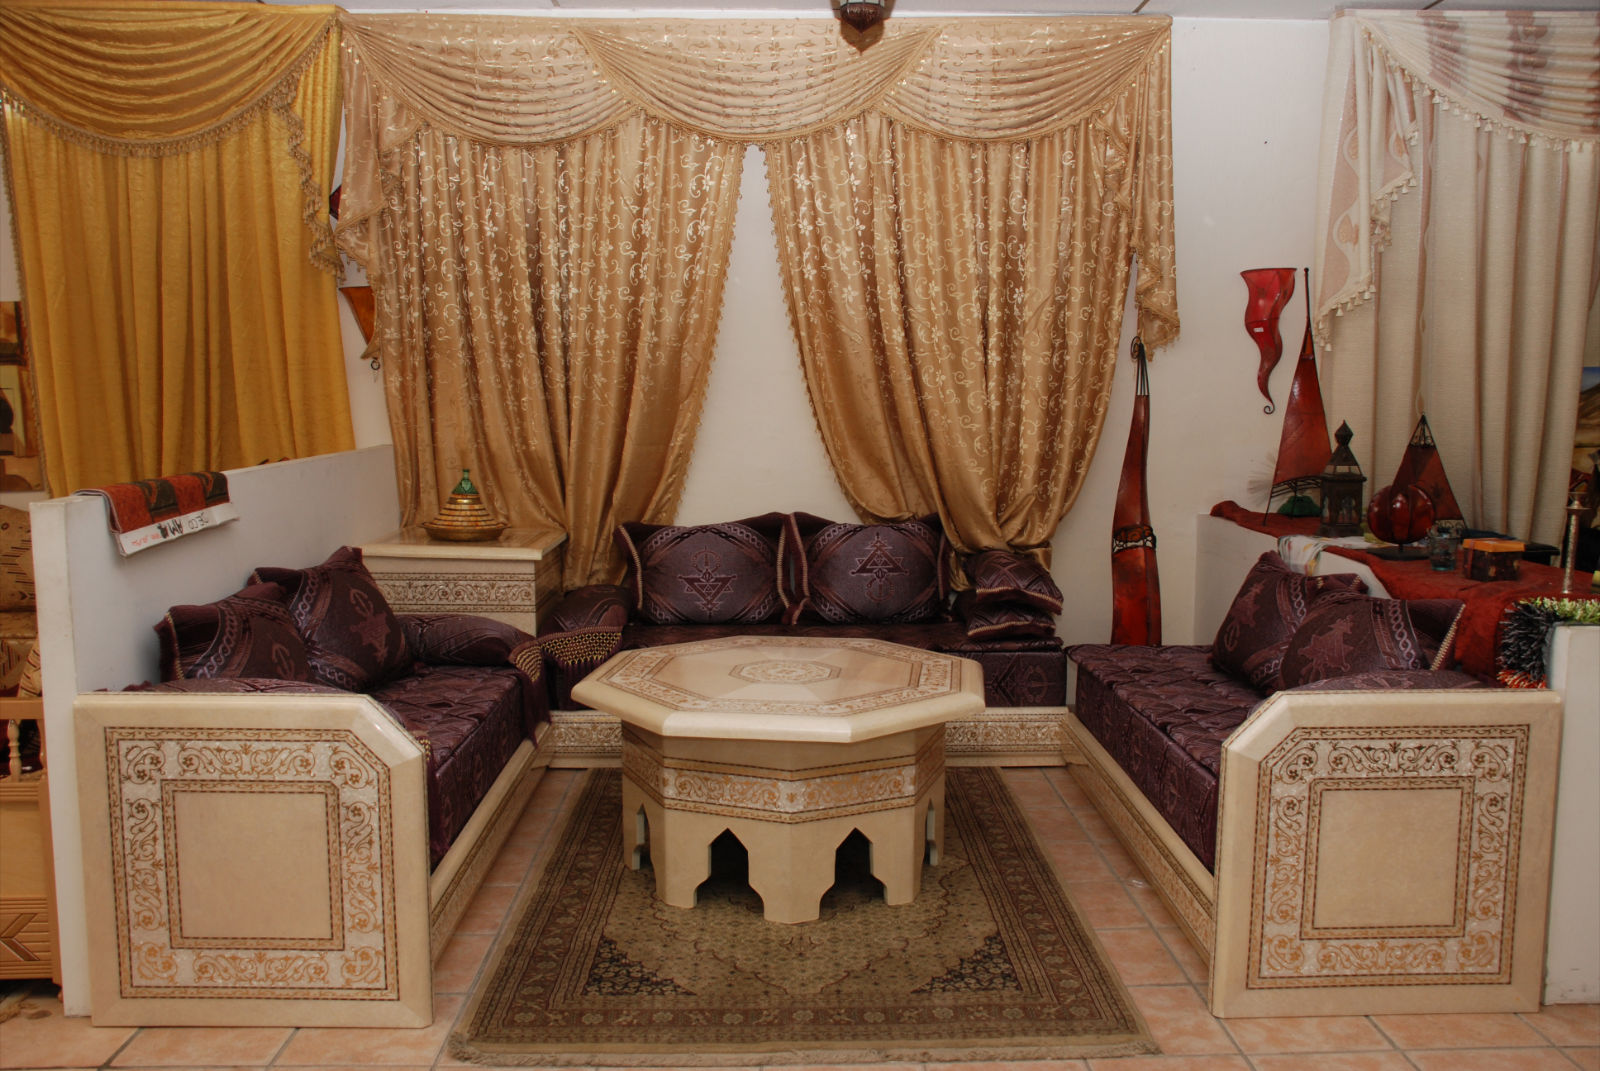 Decoration maison marocaine 2016 for Decoration 2016 maison